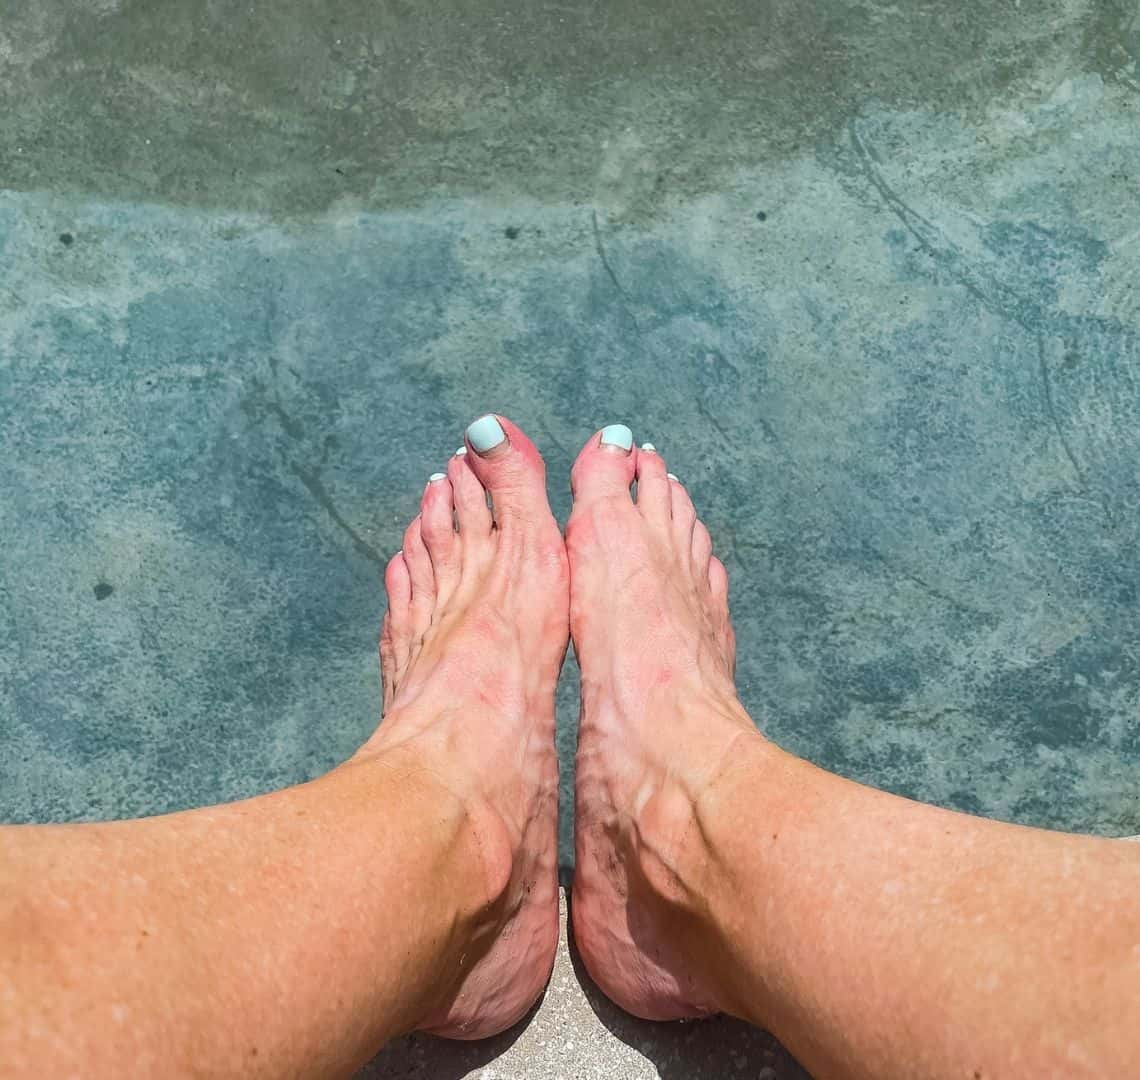 My legs and feet hovering above the clear water and grey concrete